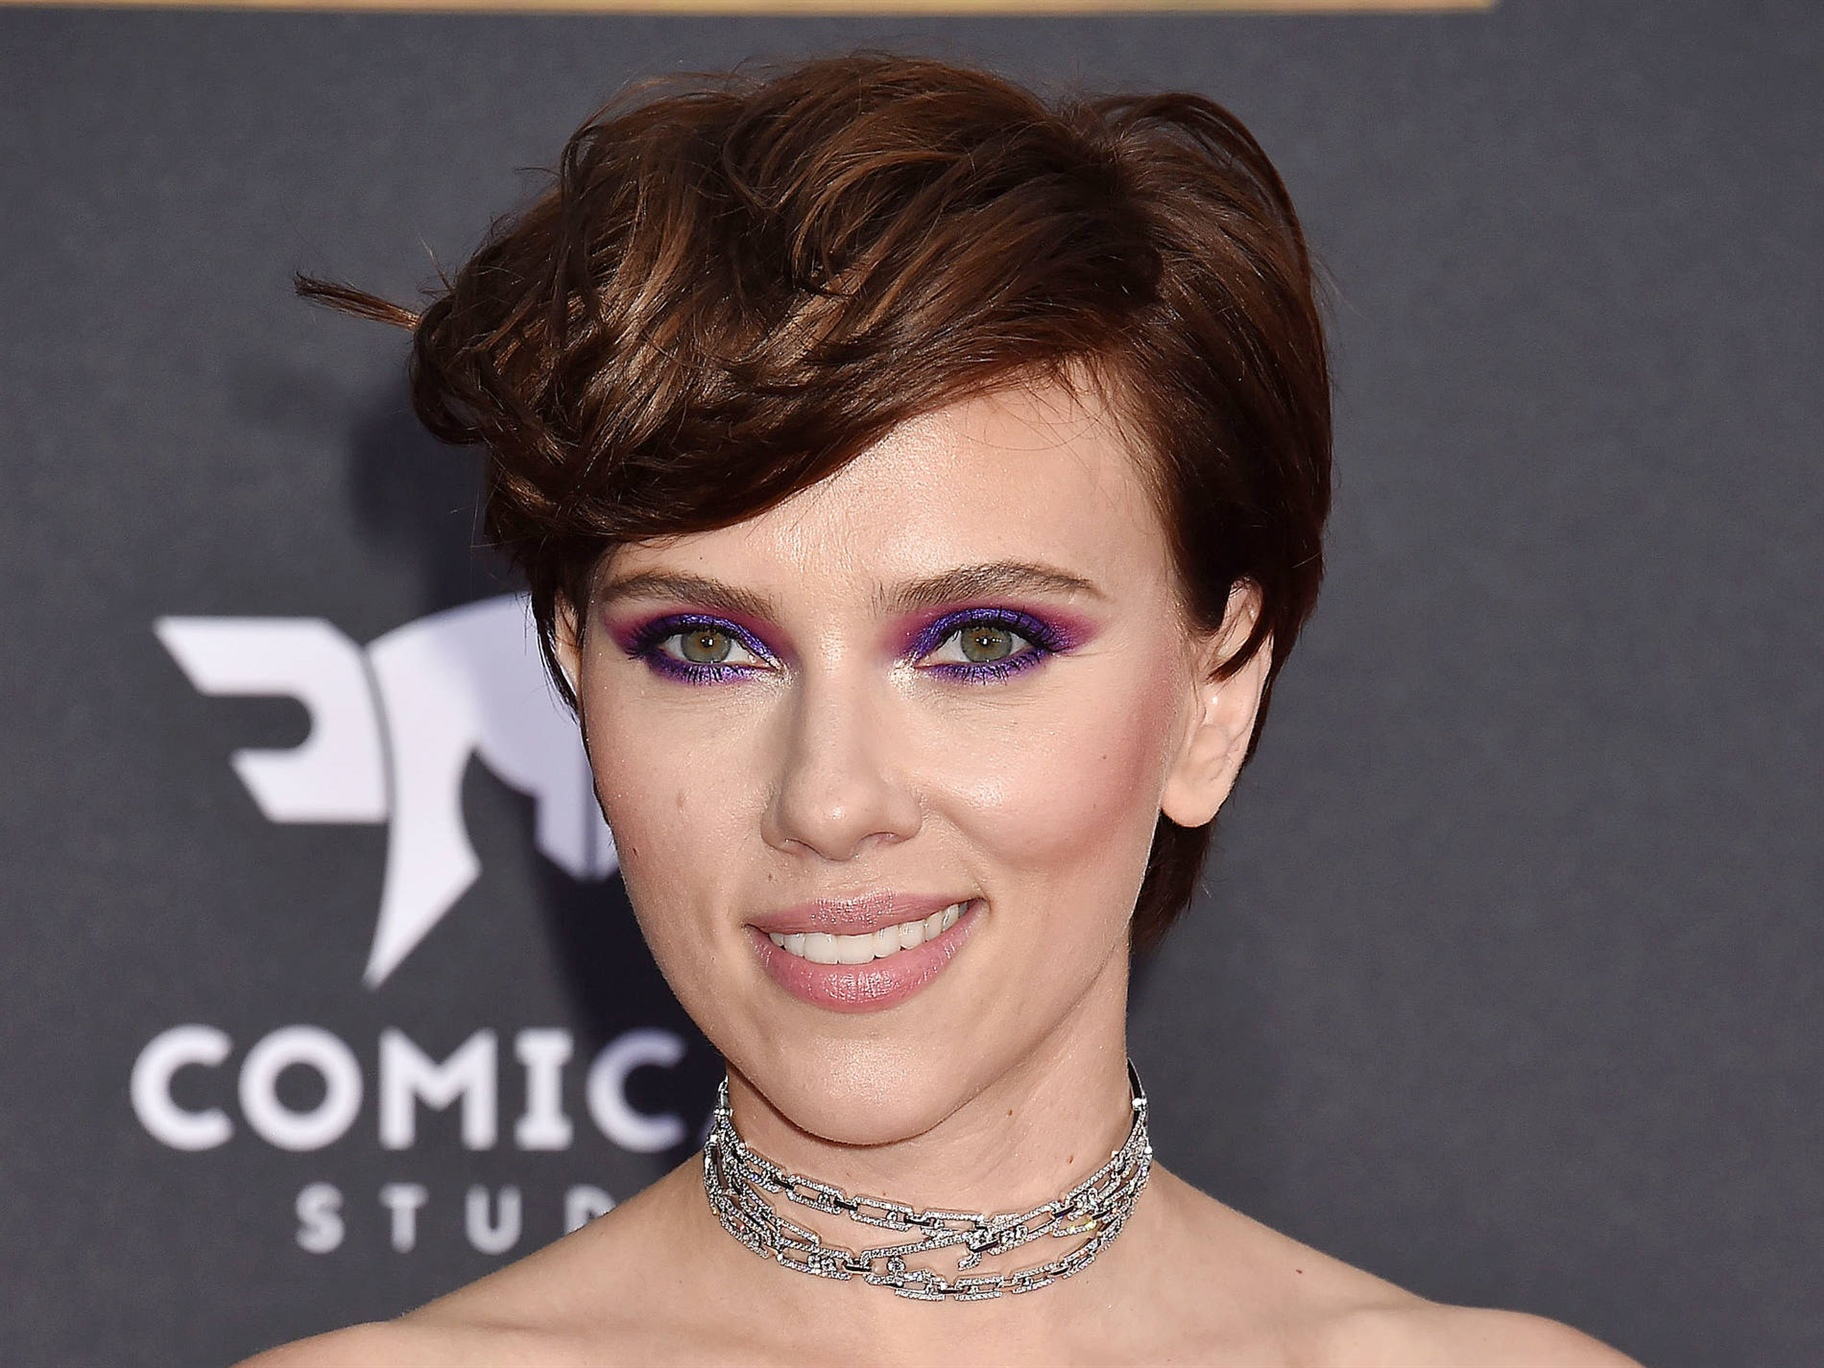 Short Hair Trends Scarlett Johansson  Filling at the top like Scarlett Johansson This hairstyle is a great choice for you with heavy hair. Your natural fullness and any fall in the hair helps to create the look for this hairstyle, which has lengths at the top and keeps sides and neck short. Take the curling iron when you want to style the hairstyle a little extra. Also try a trendy wet look for festive occasions, this hairstyle will suit well.